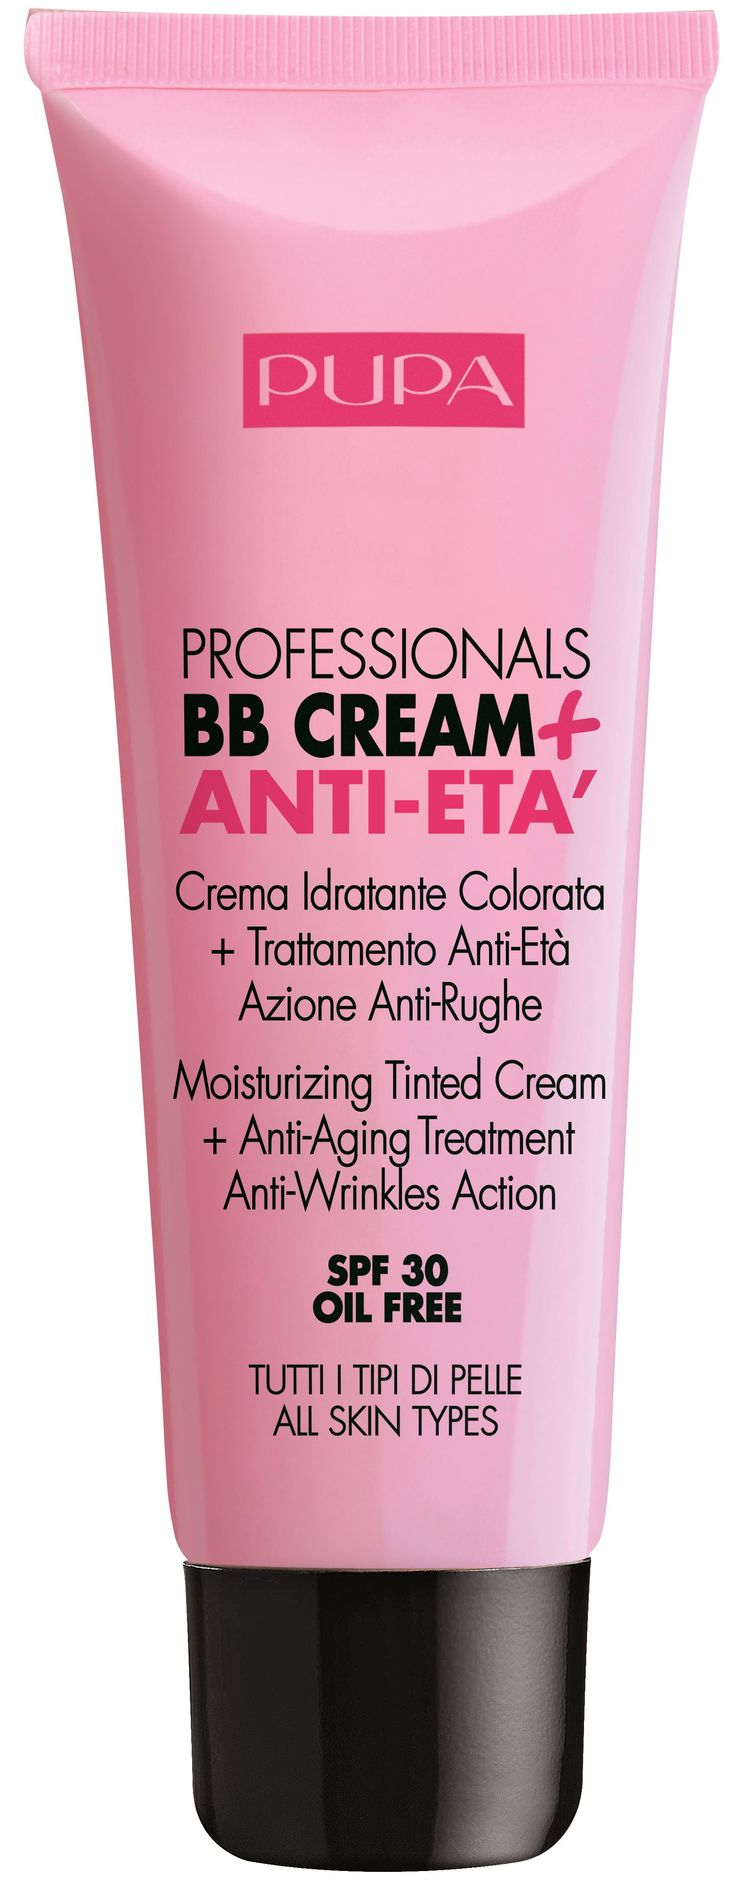 Pupa BB Cream + Anti-Aging Treatment SPF 30